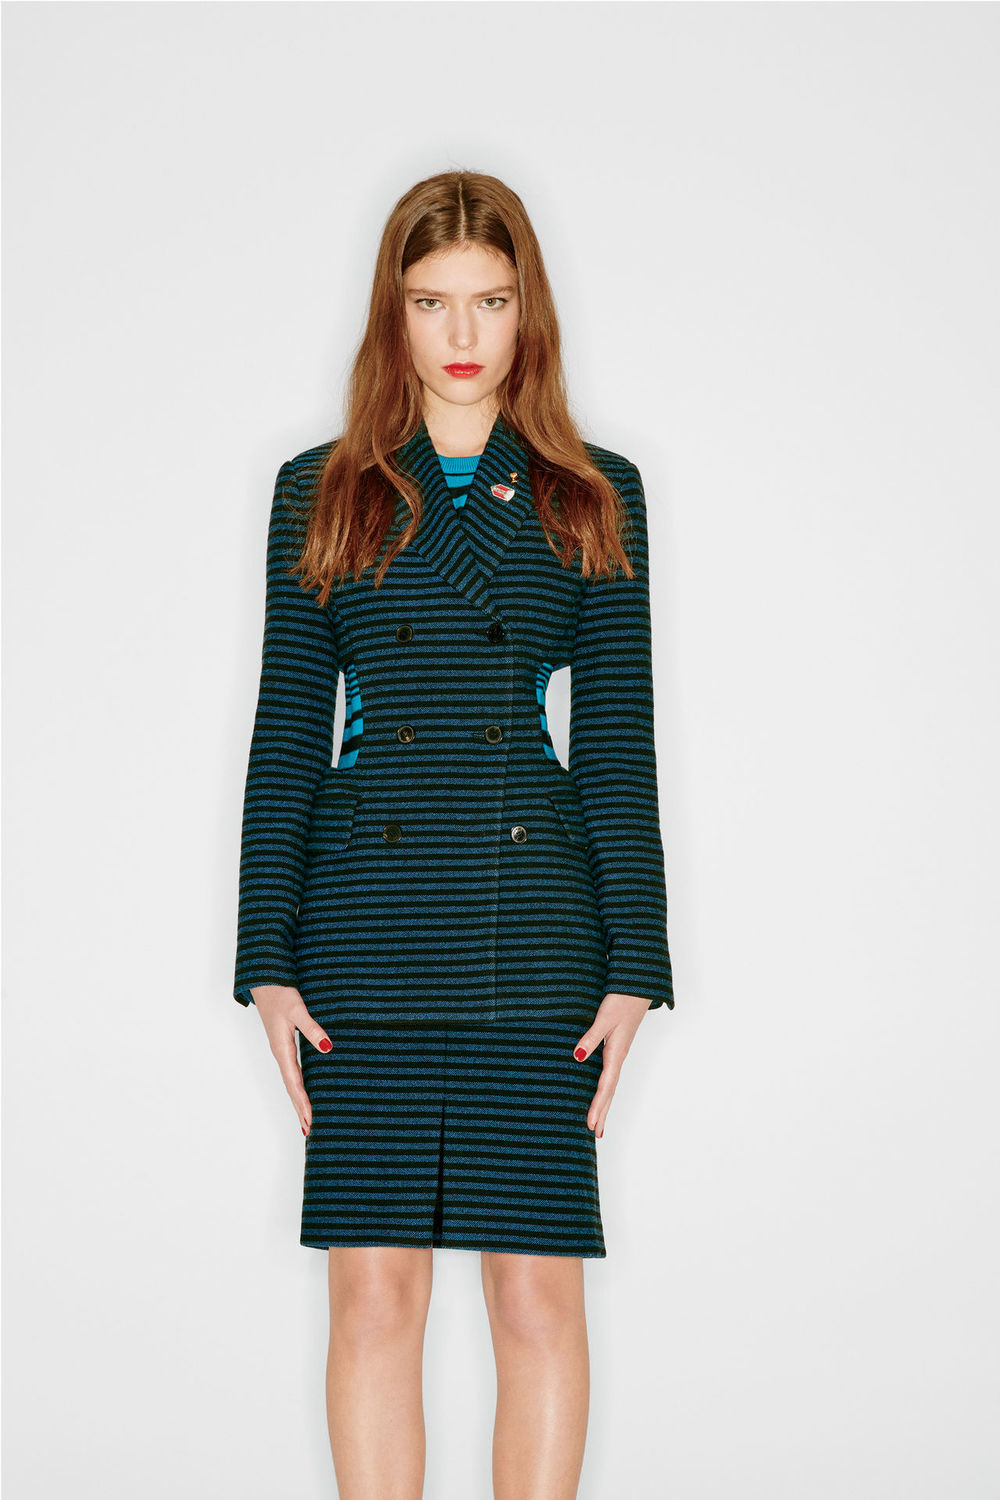 sonia_rykiel_pre_fall_2016_look_book_06.jpg